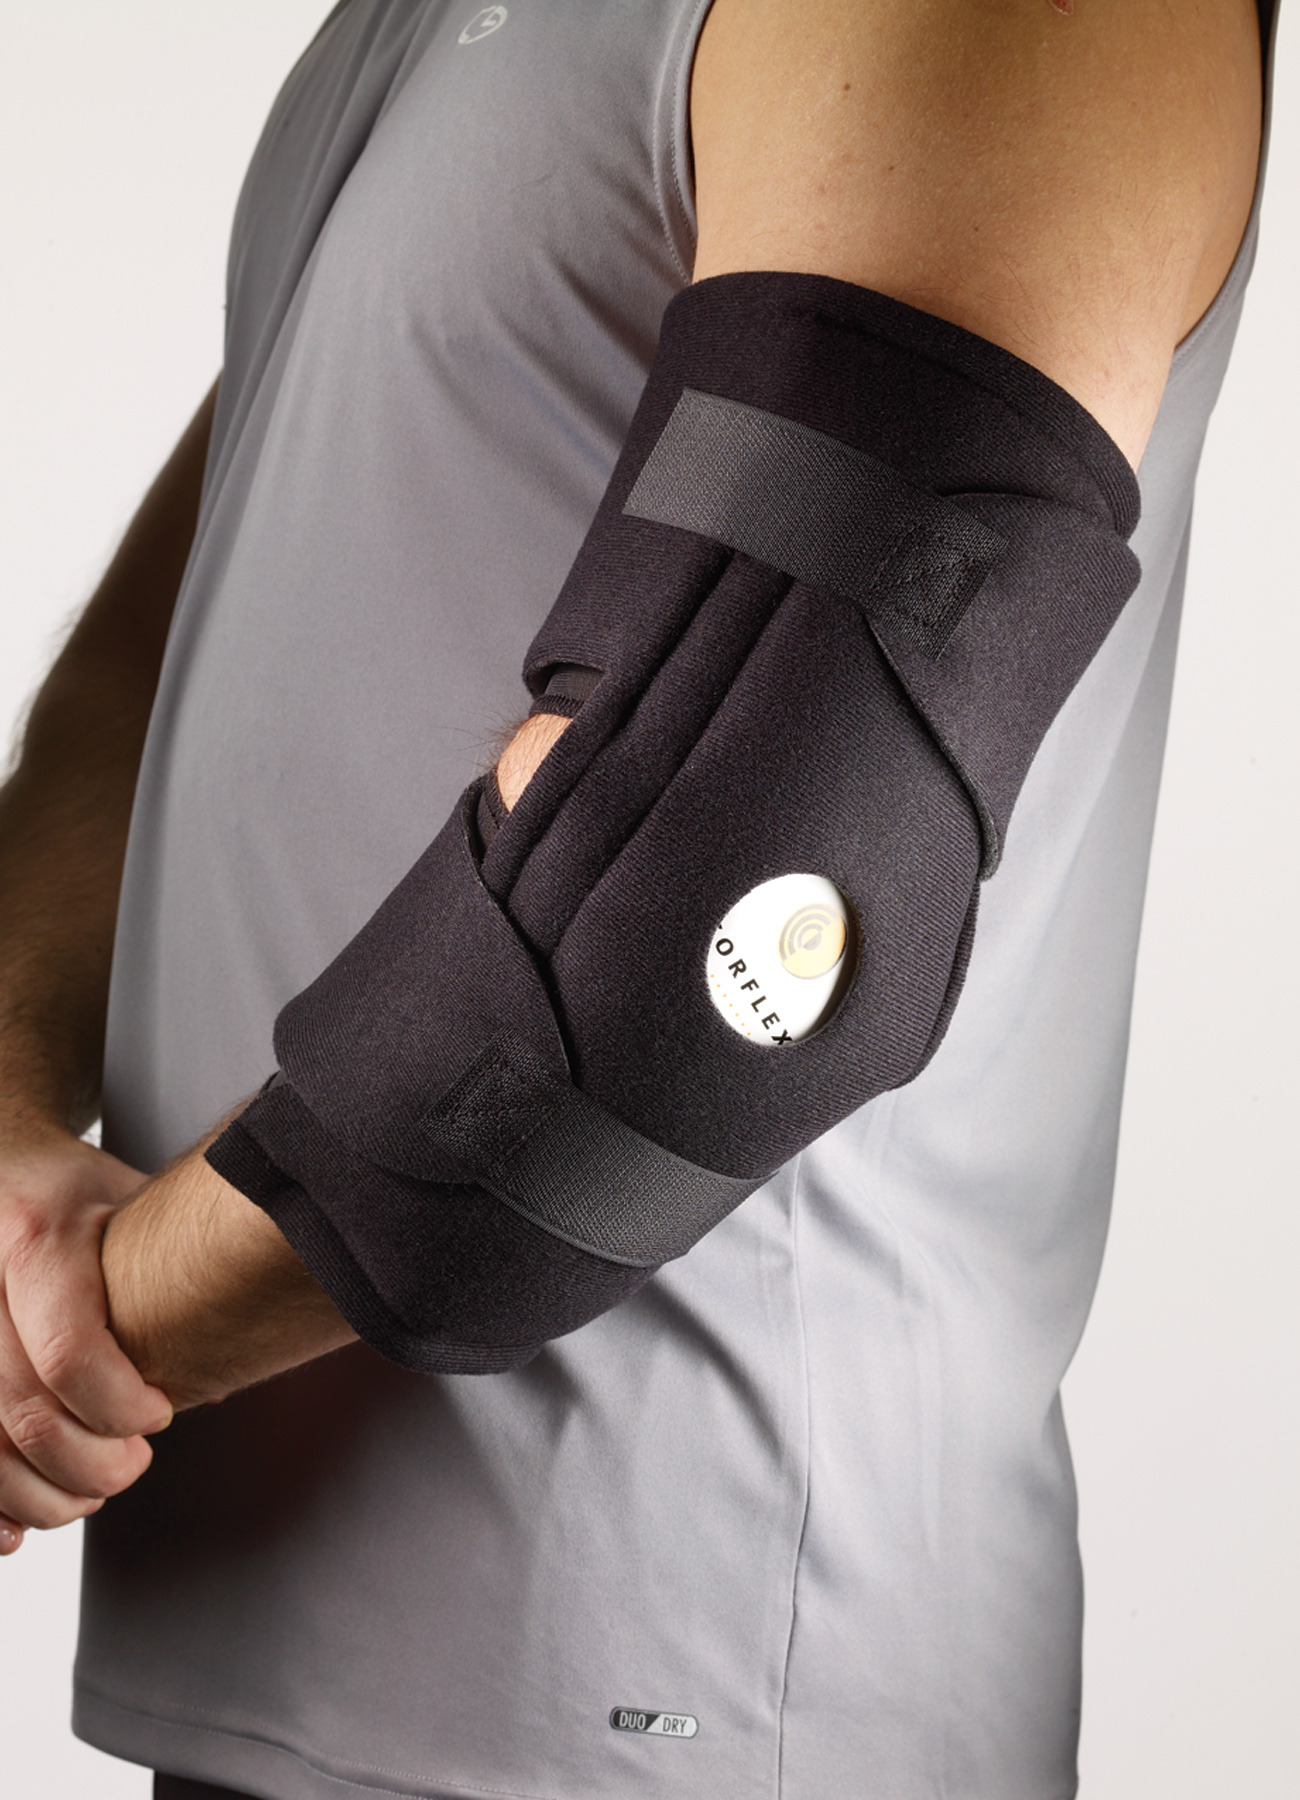 Cryotherm Elbow Wrap